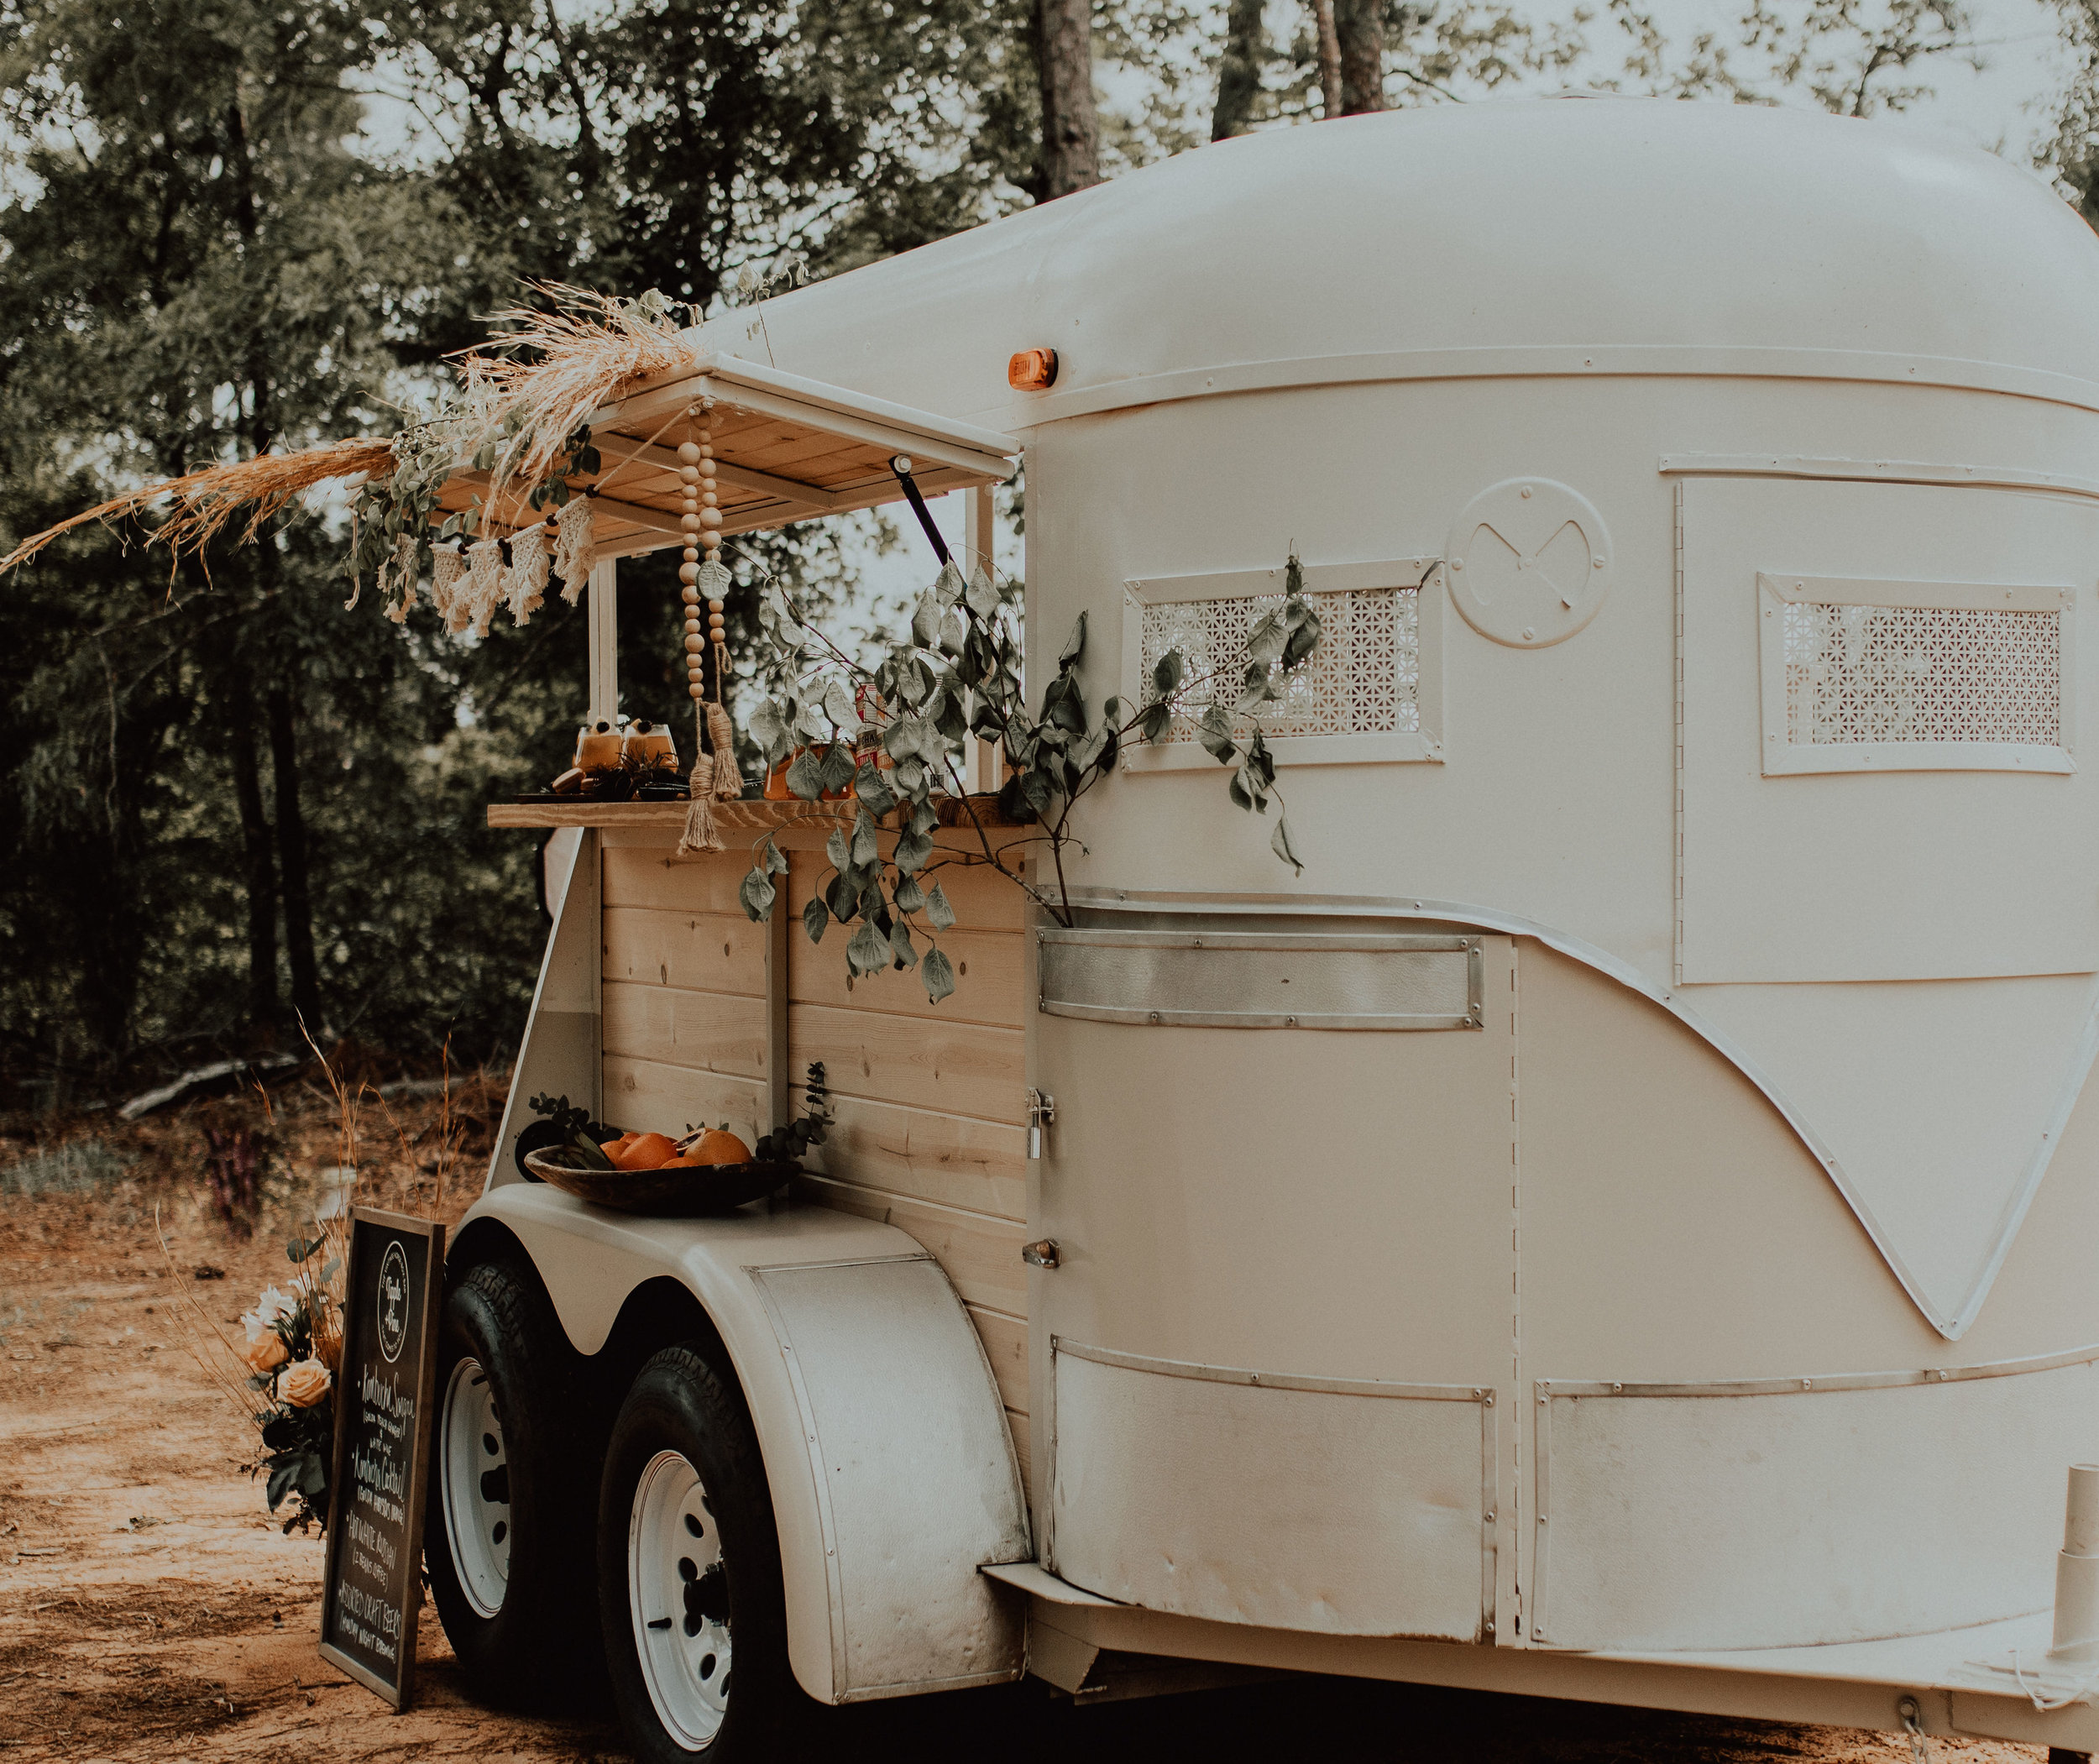 Drinks taste better when they are served from a vintage horse trailer! pc: Kendi Austinson Photography